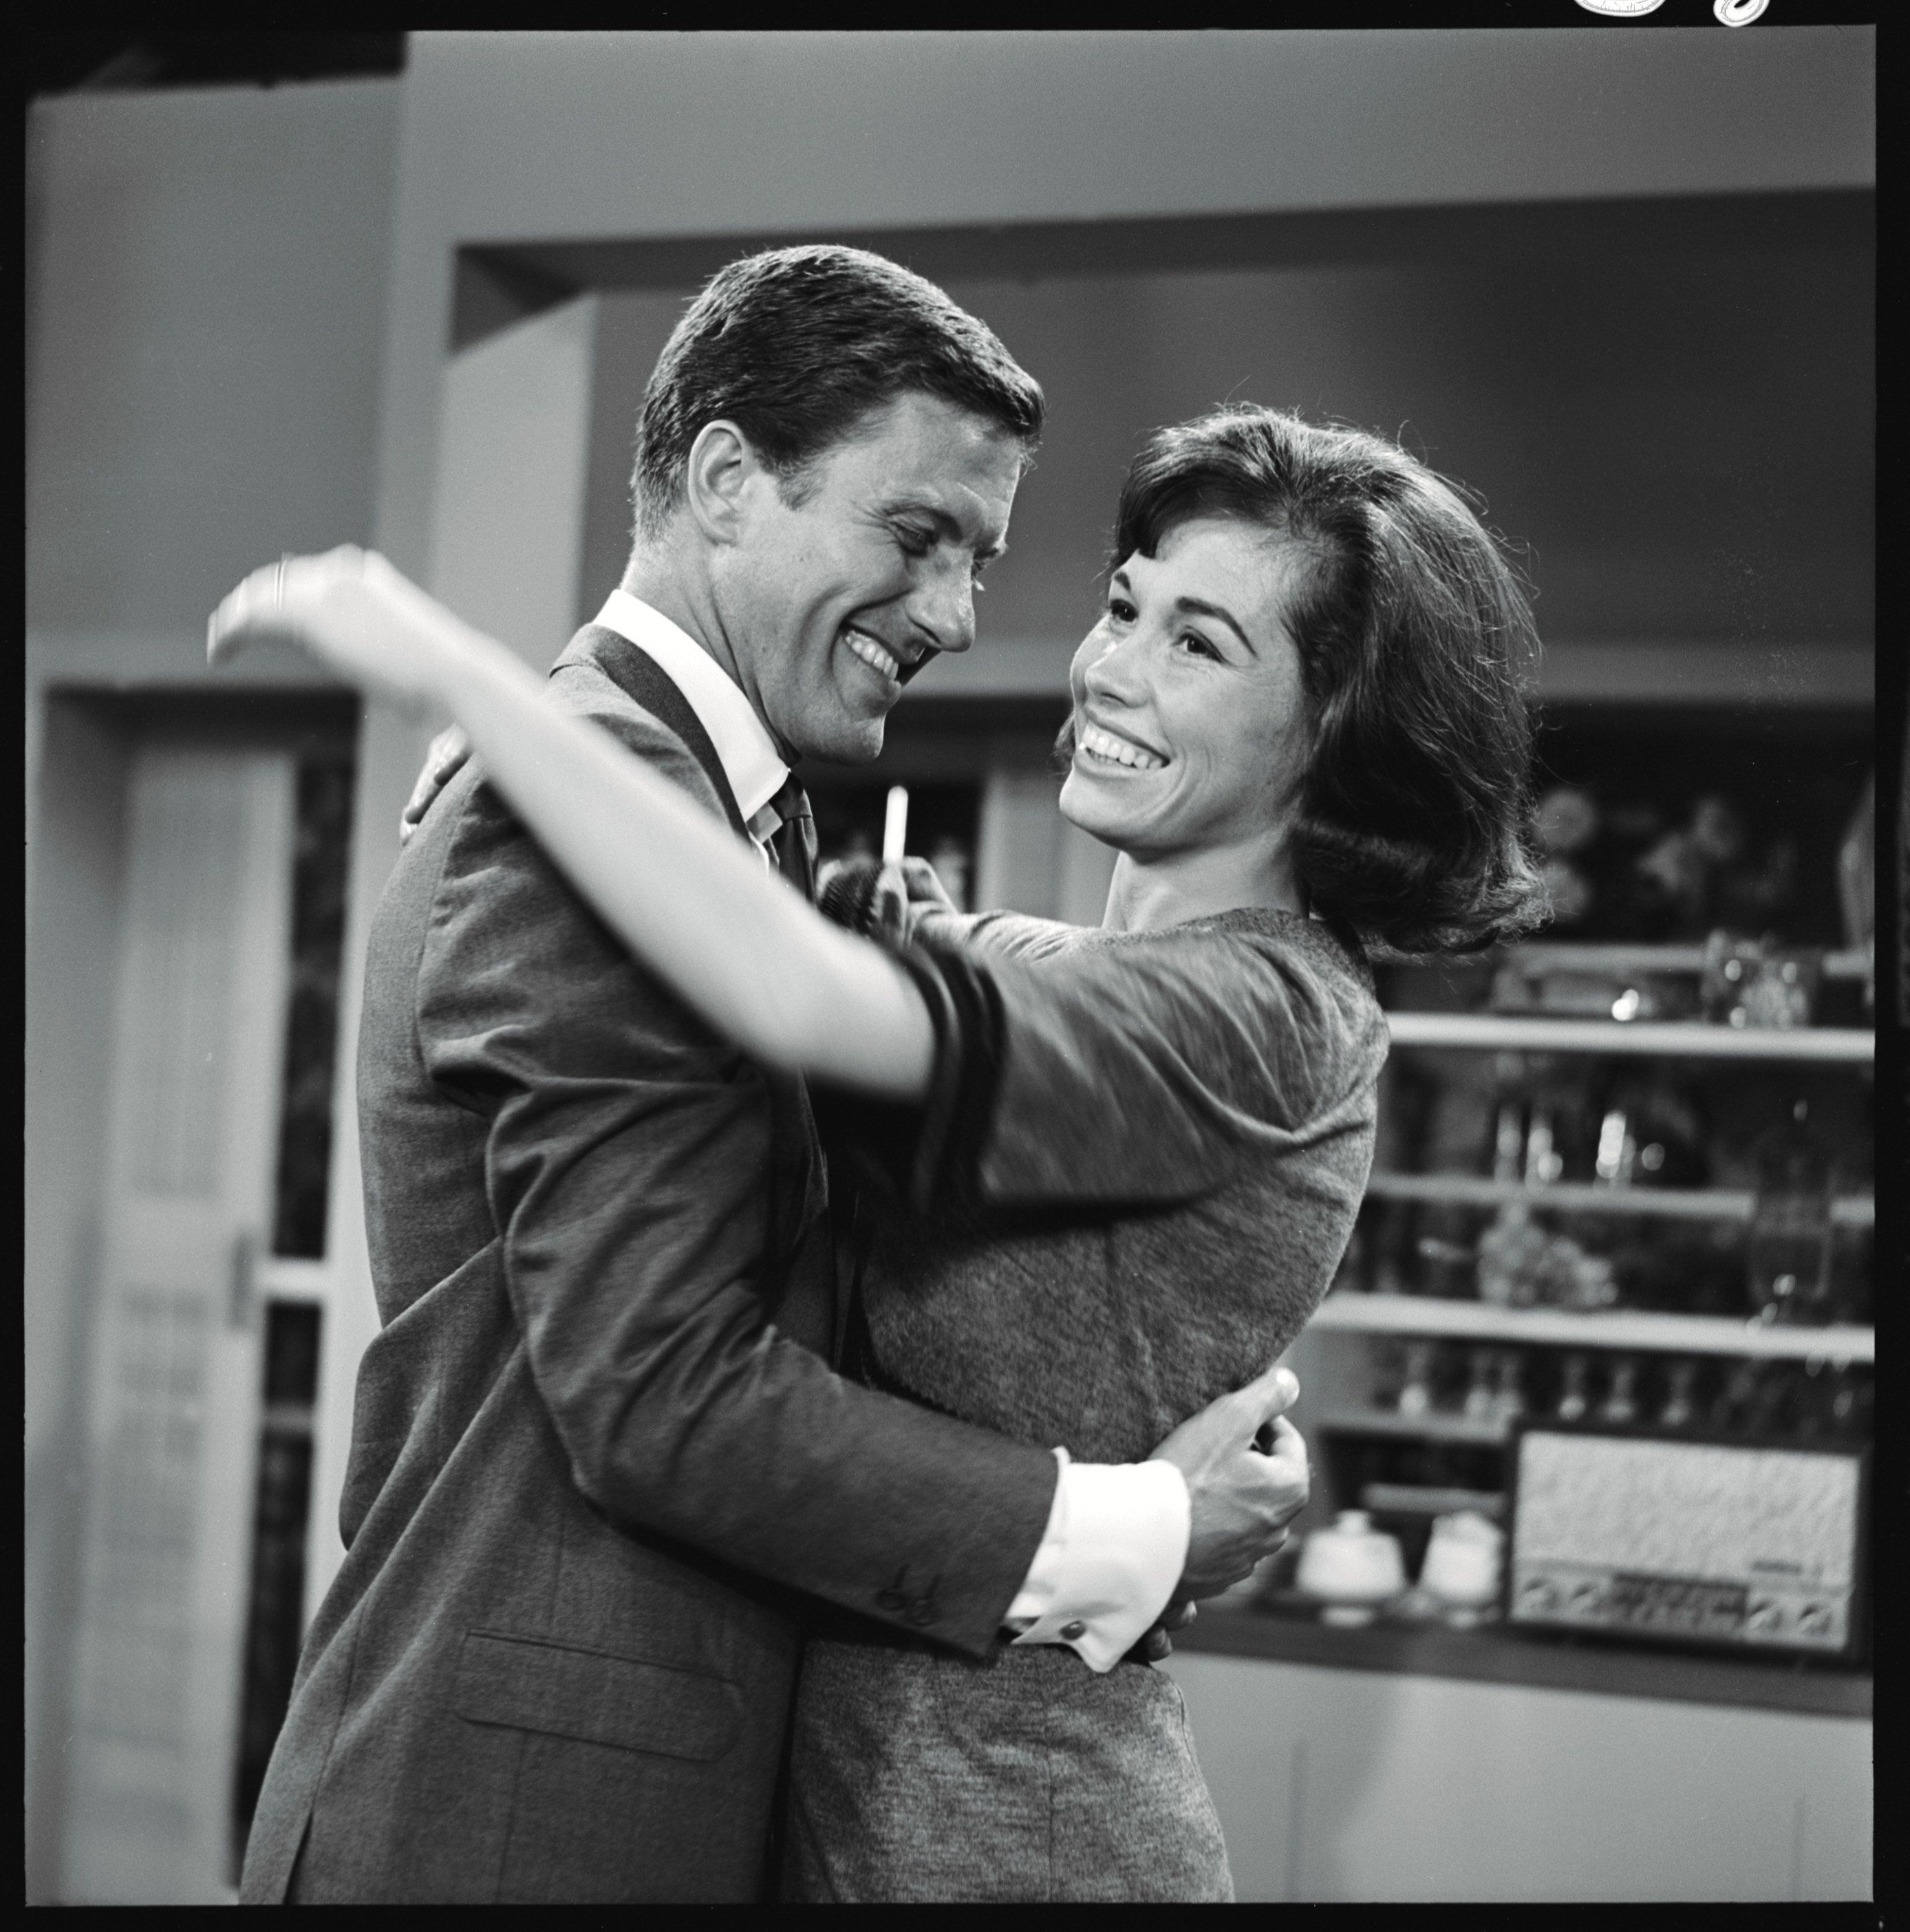 LOS ANGELES - JULY 10: THE DICK VAN DYKE SHOW with cast members Dick Van Dyke as Rob Petrie and Mary Tyler Moore as Laura Petrie on the set of episode 'Washington vs. The Bunny'. Image dated July 10, 1961. (Photo by CBS via Getty Images)